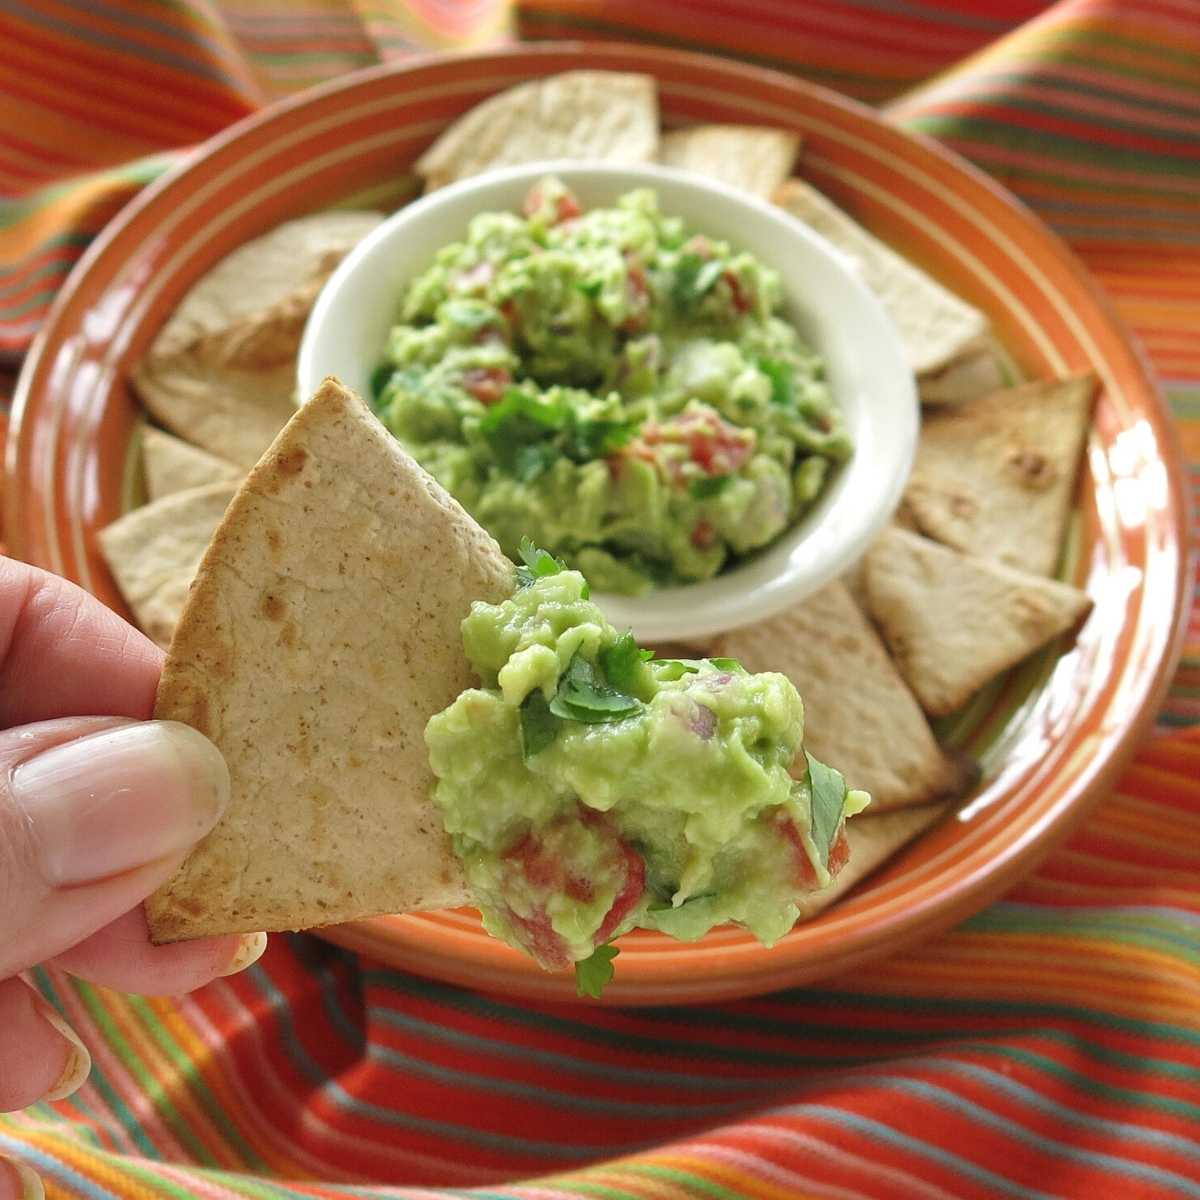 Guacamole on a homemade low-carb tortilla chip.